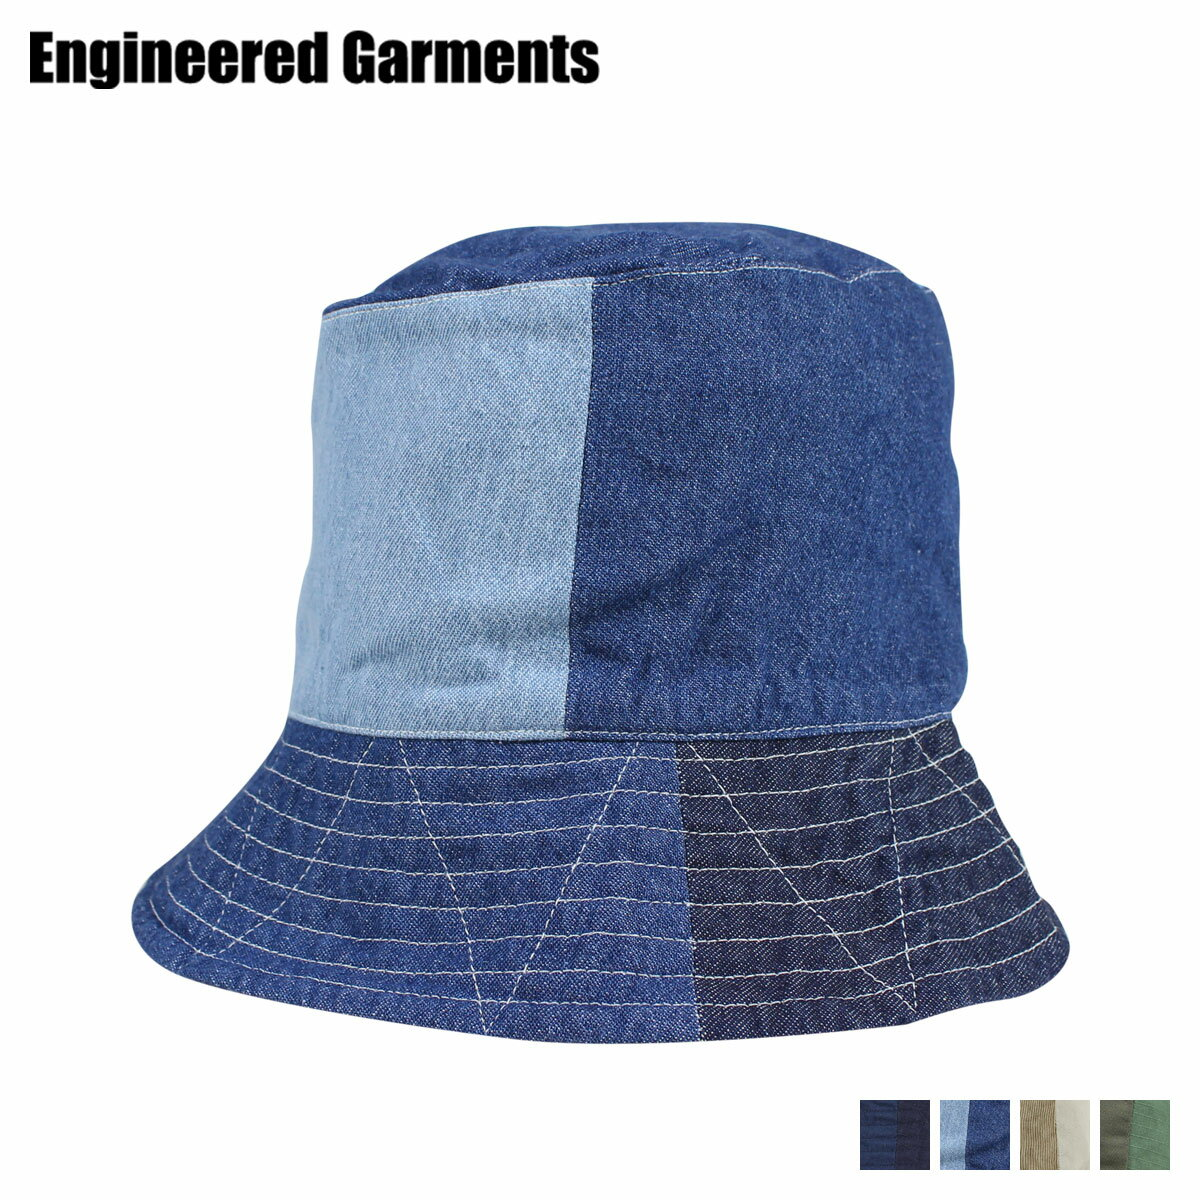 メンズ帽子, ハット ENGINEERED GARMENTS BUCKET HAT 19SH003